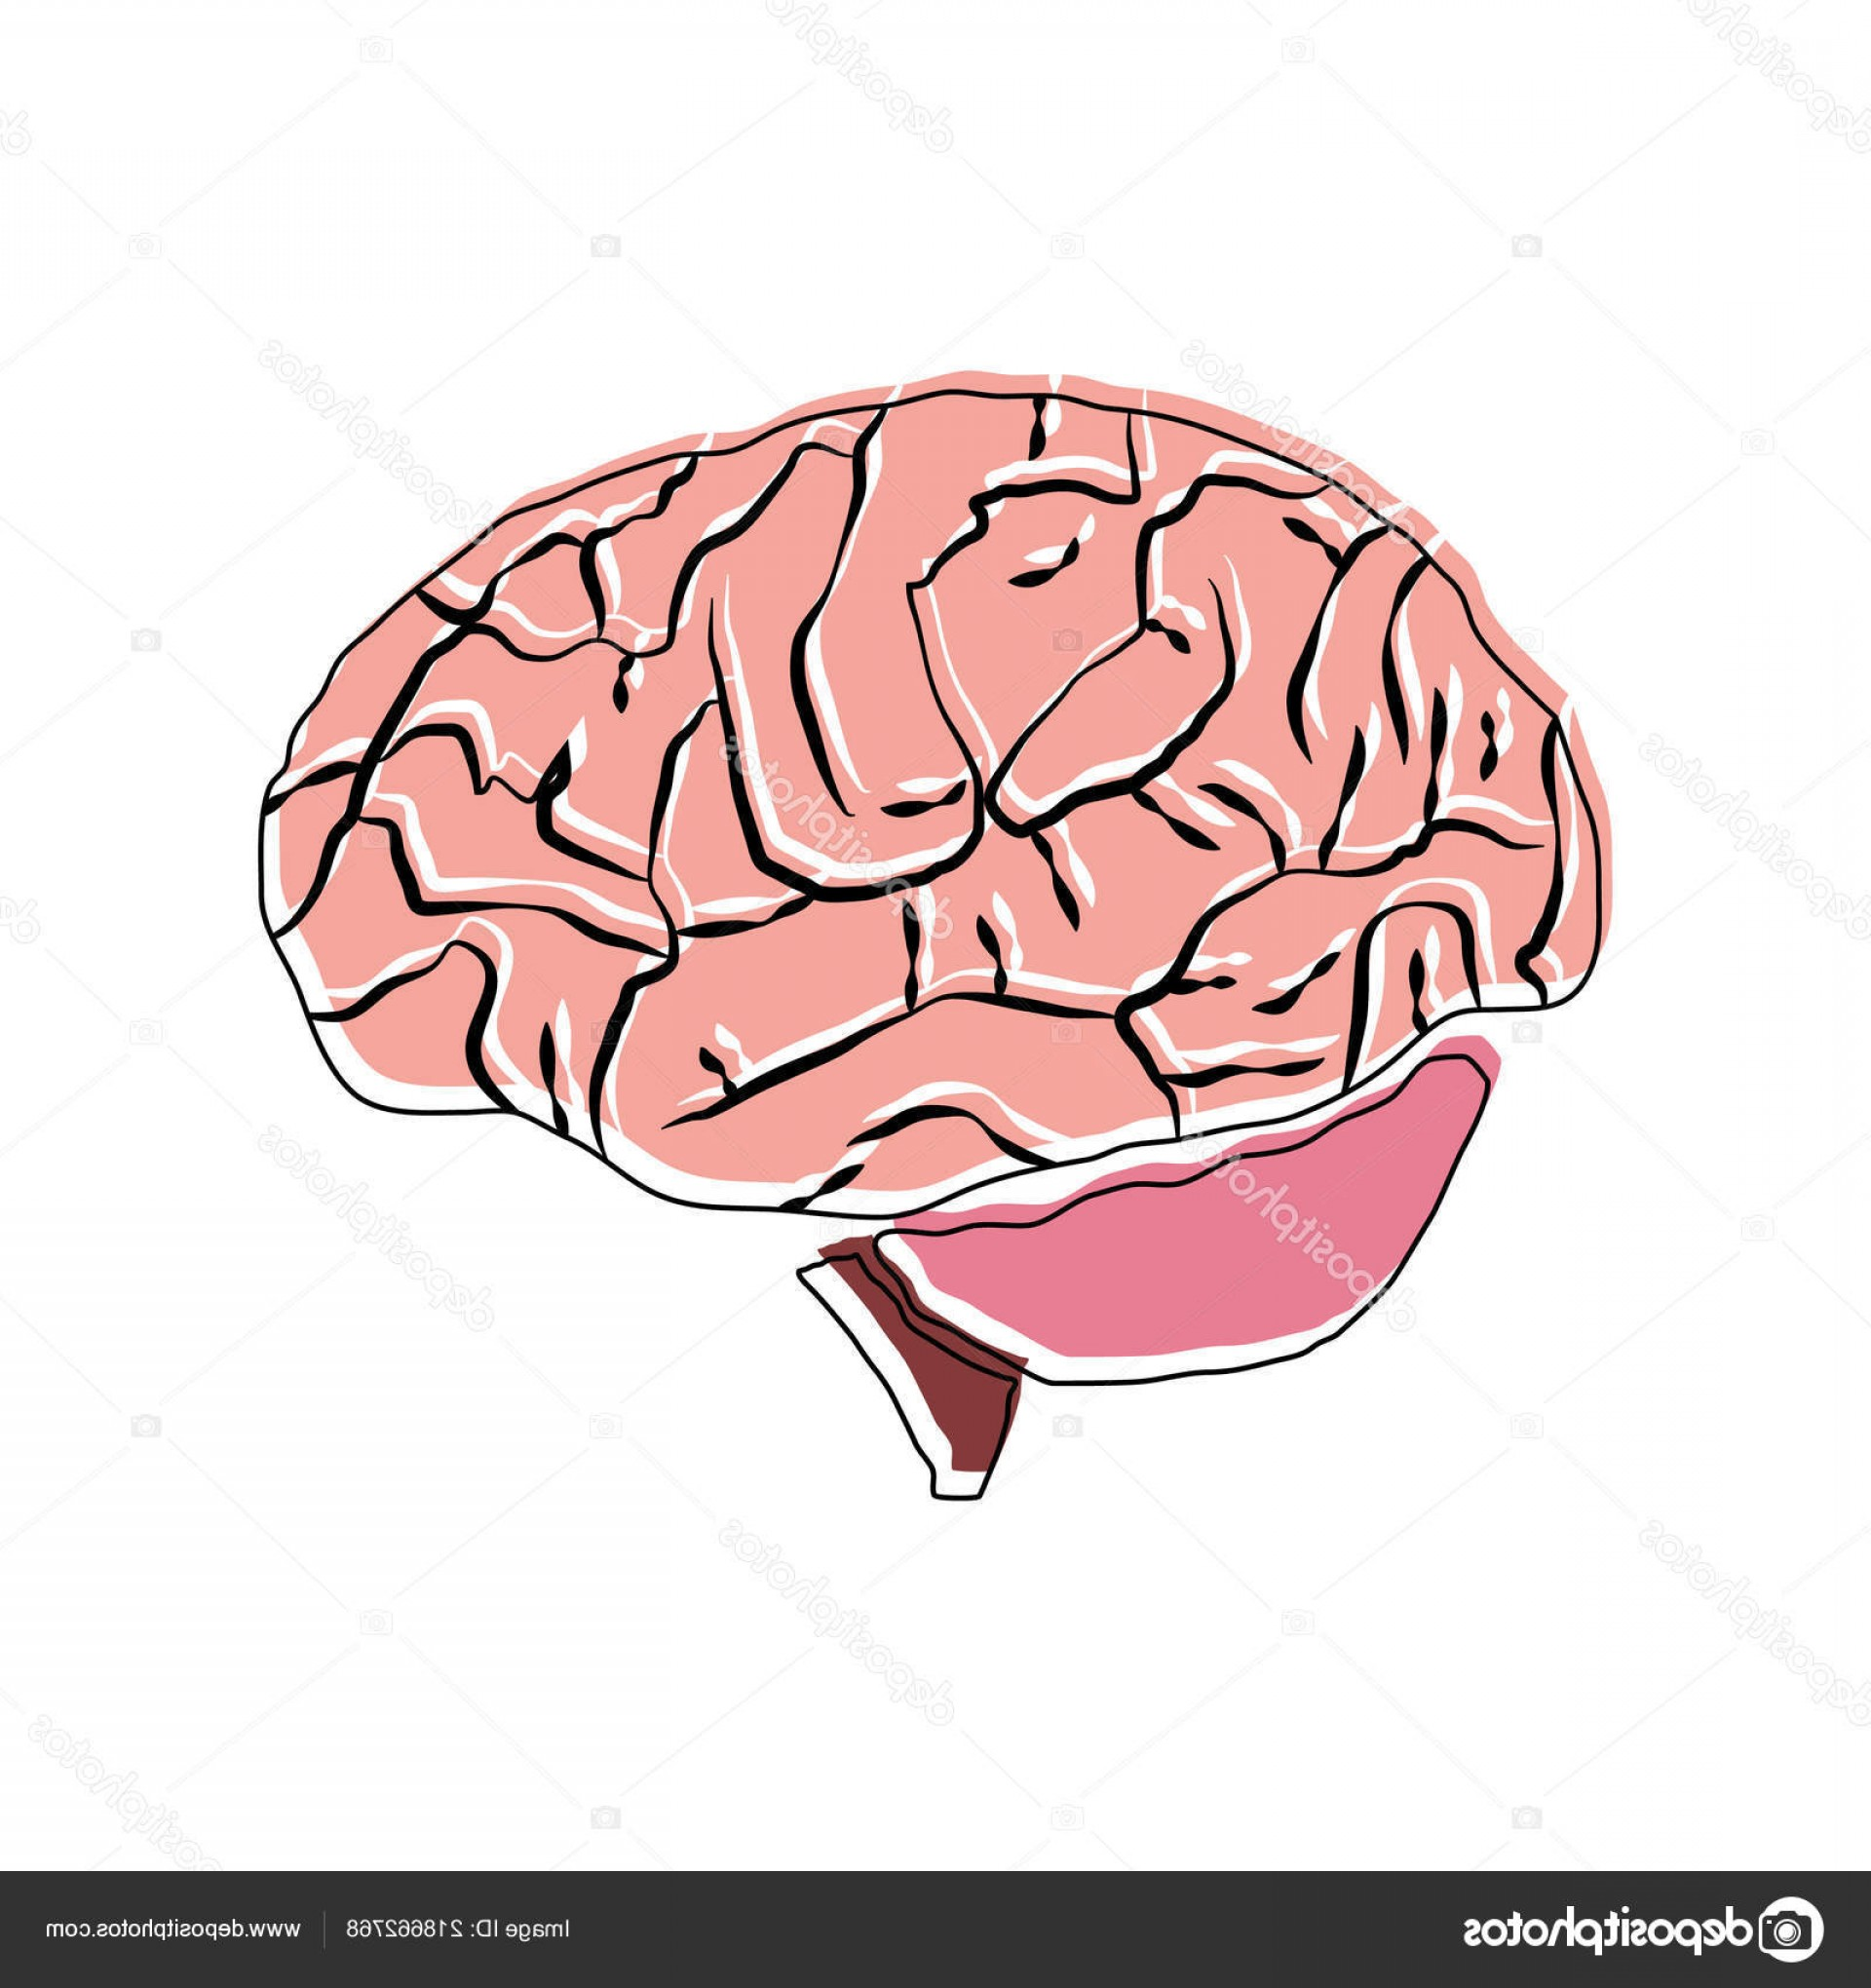 Brain Vector Art: Stock Illustration Human Brain Vector Art Single